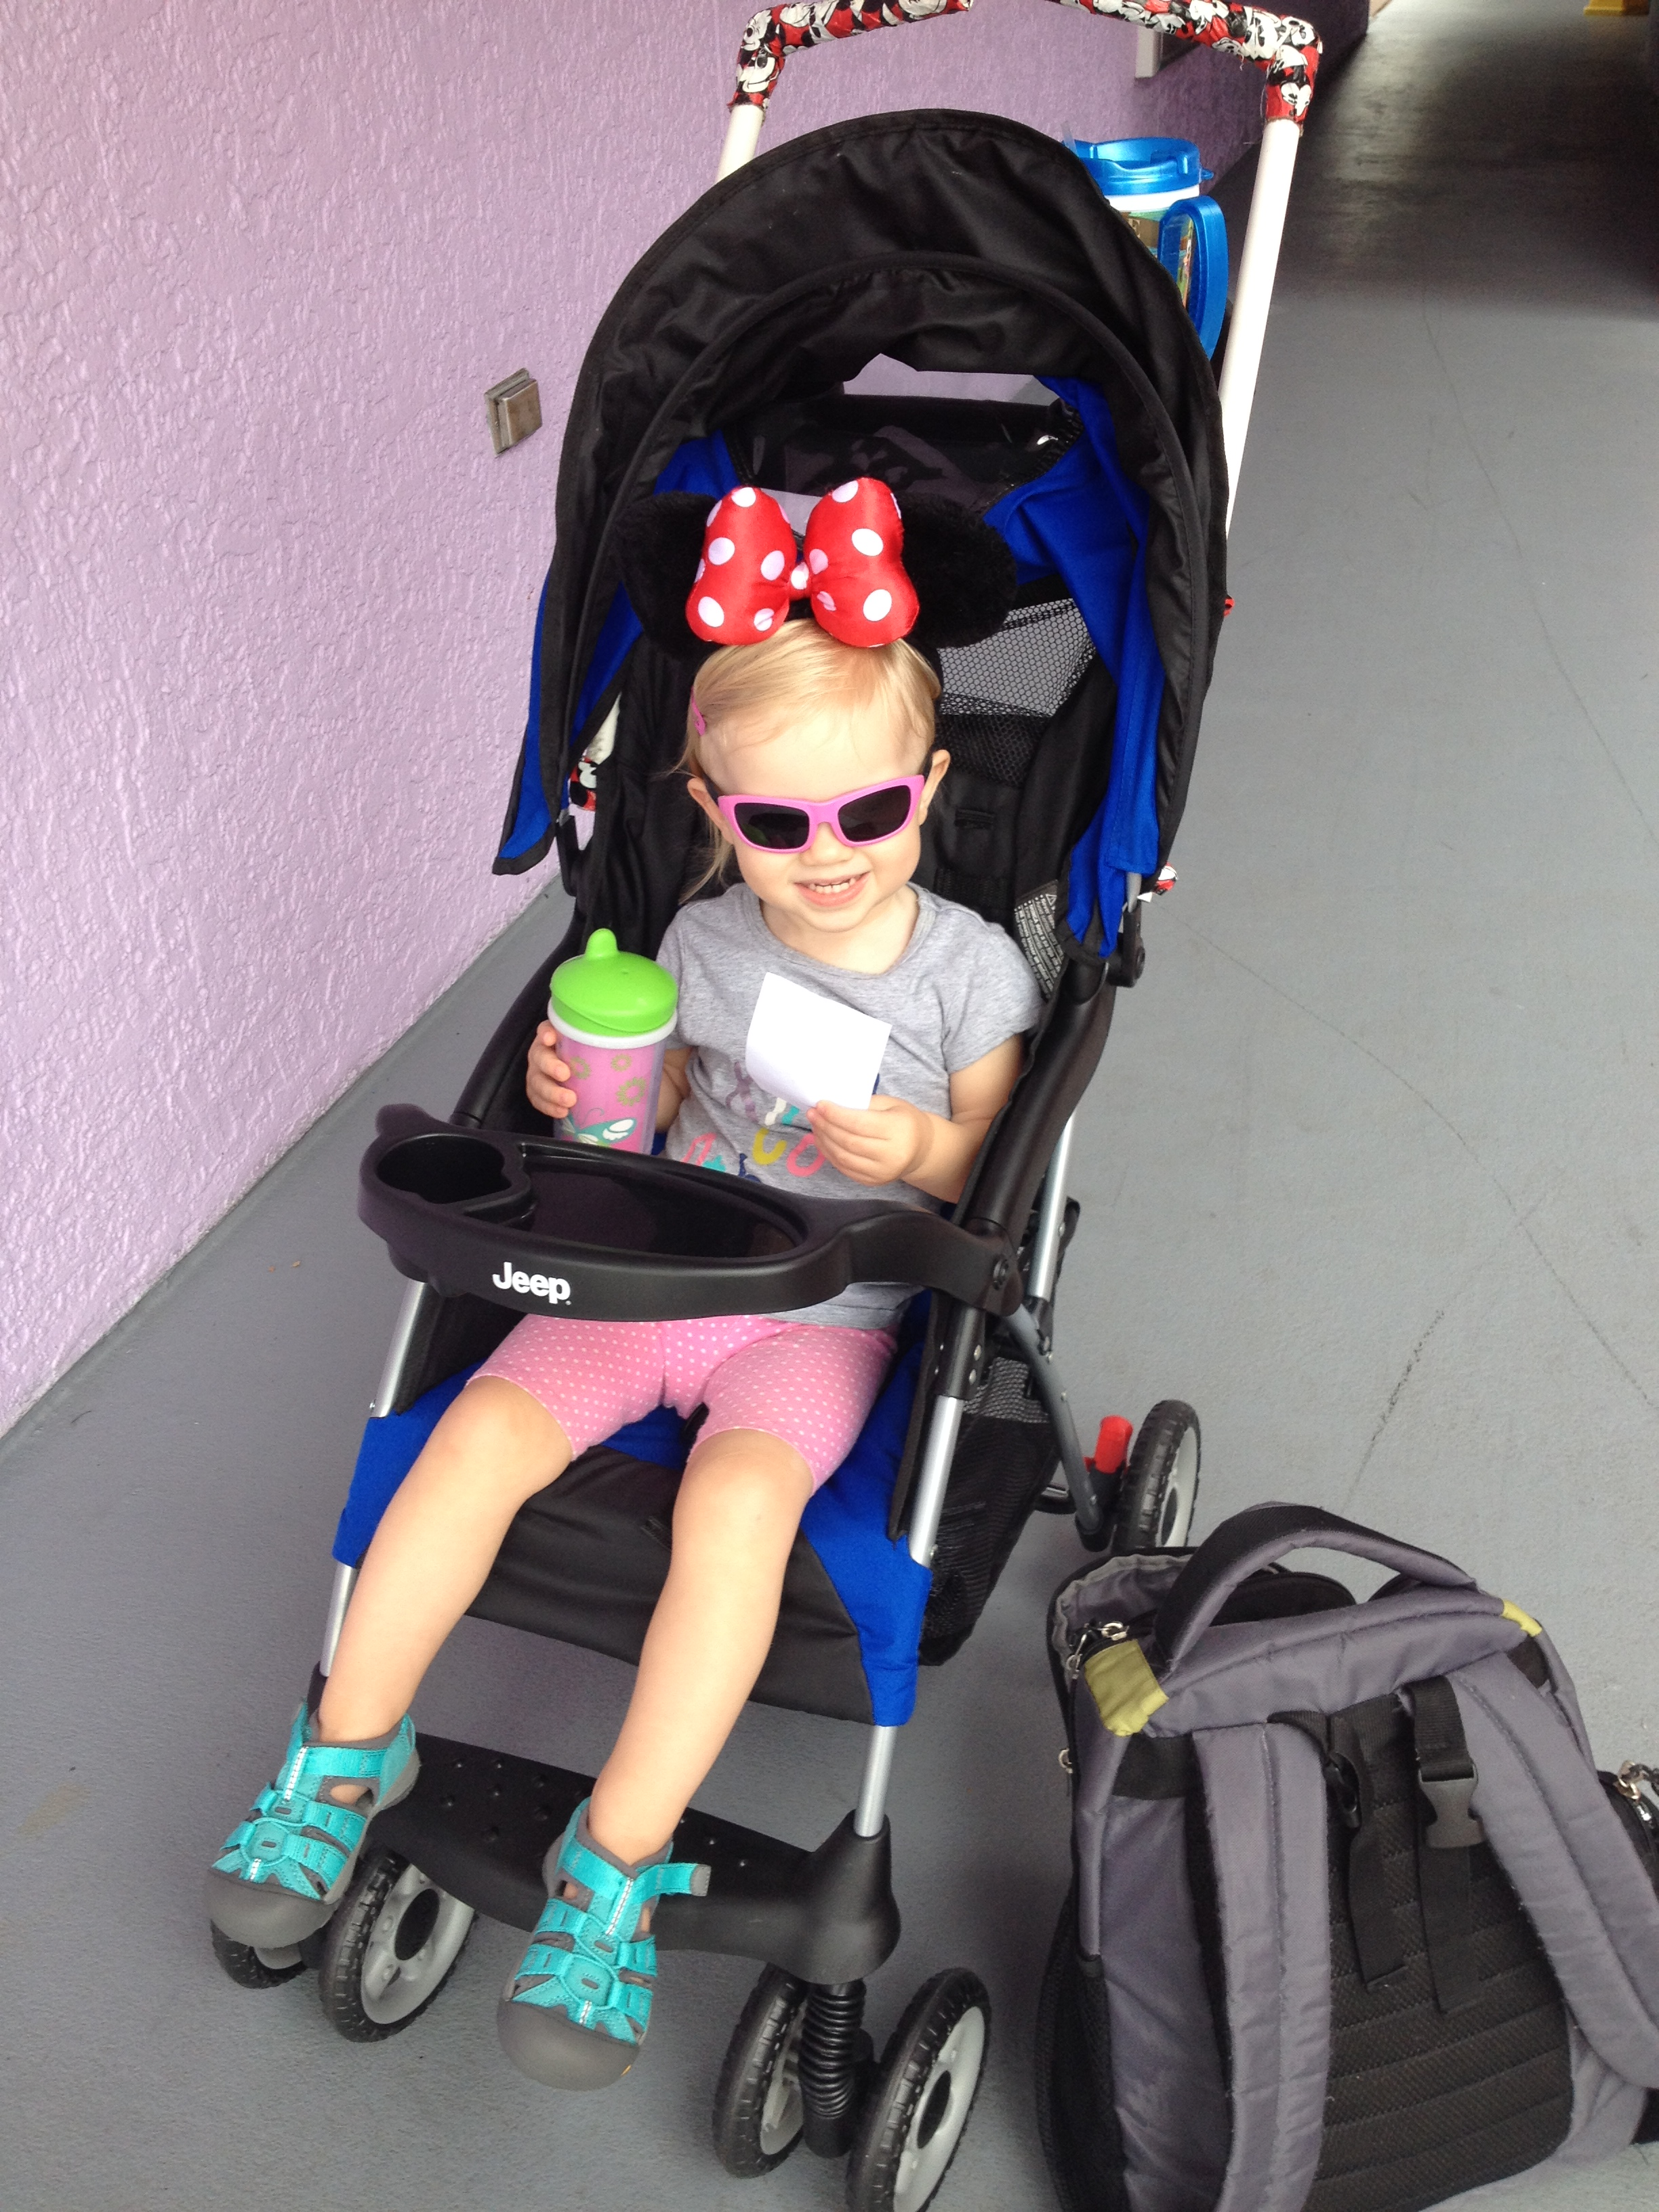 little girl sitting in a stroller with minnie mouse ears